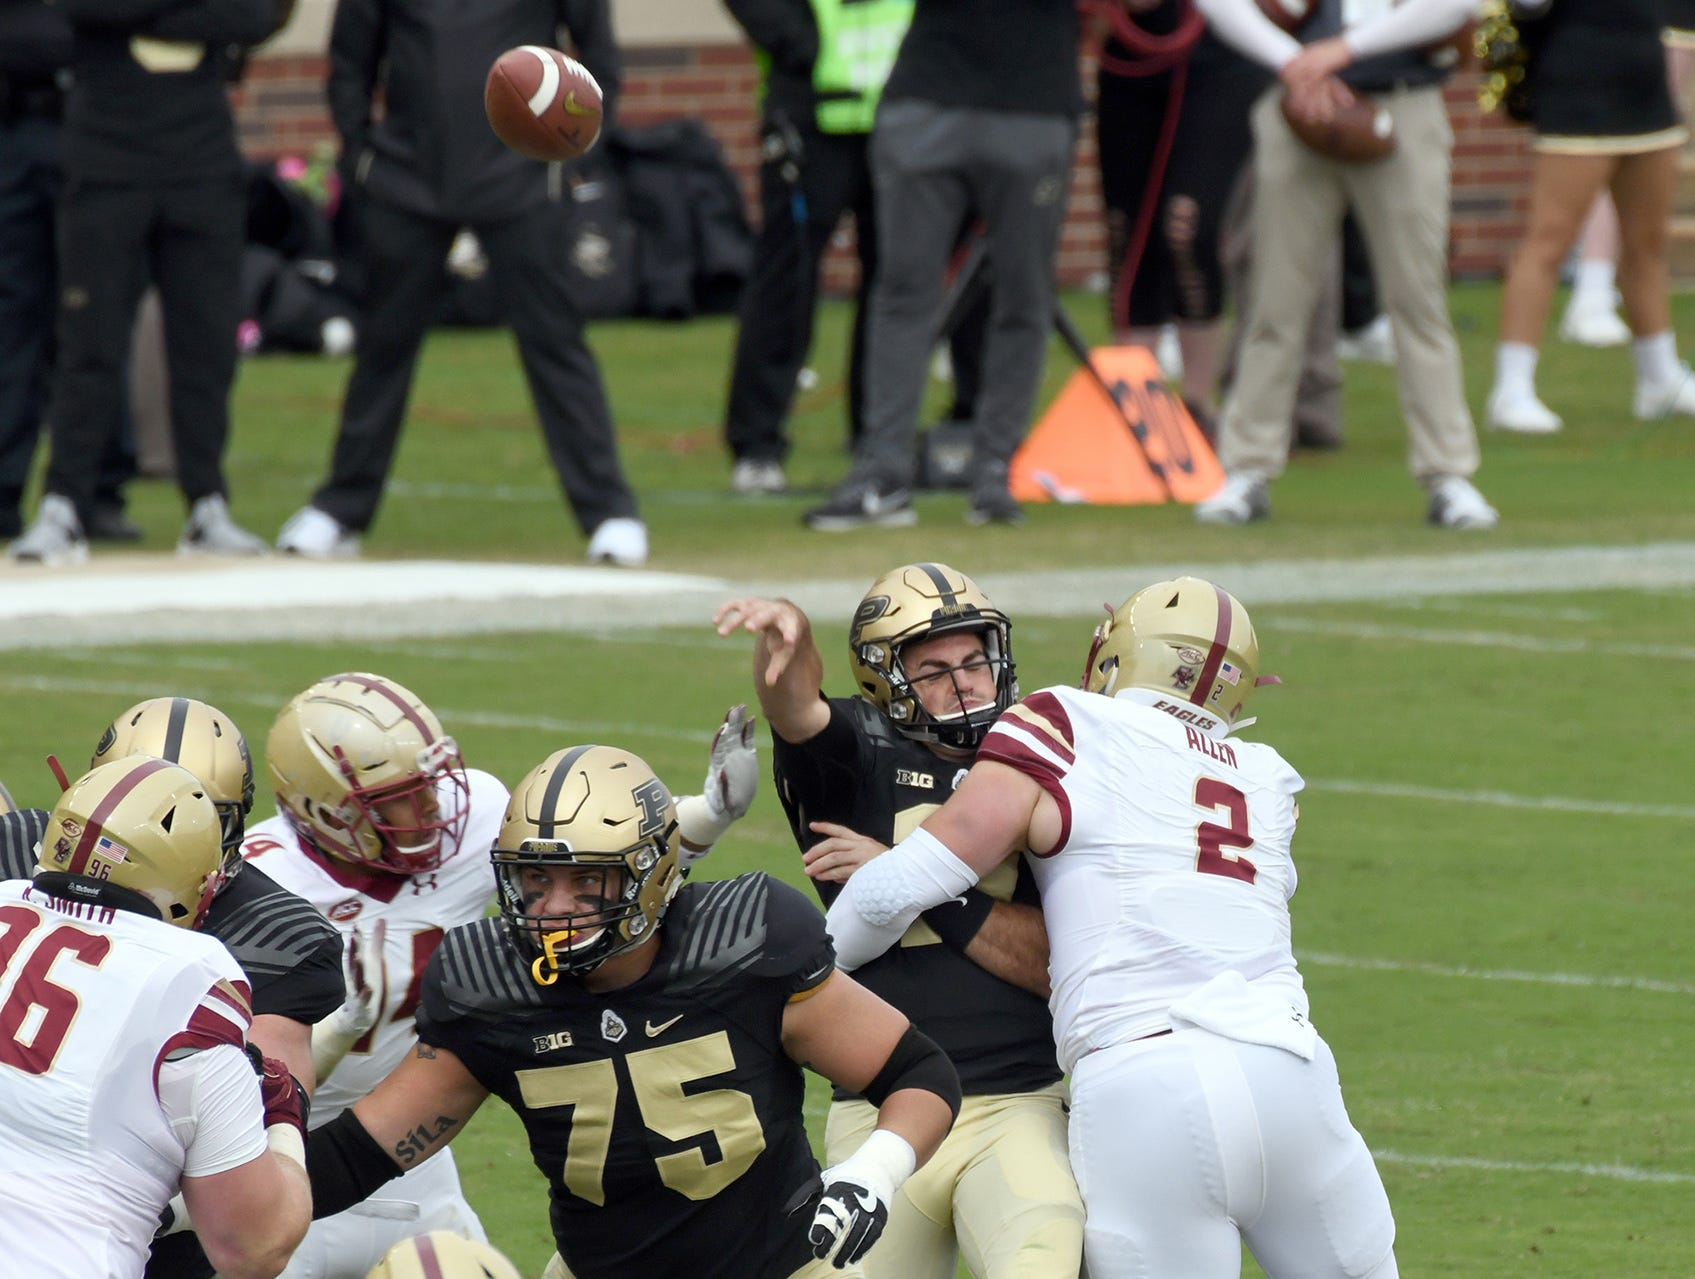 Purdue's David Blough is hit while throwing in Purdue's 30-13 win in West Lafayette on Saturday September 22, 2018.